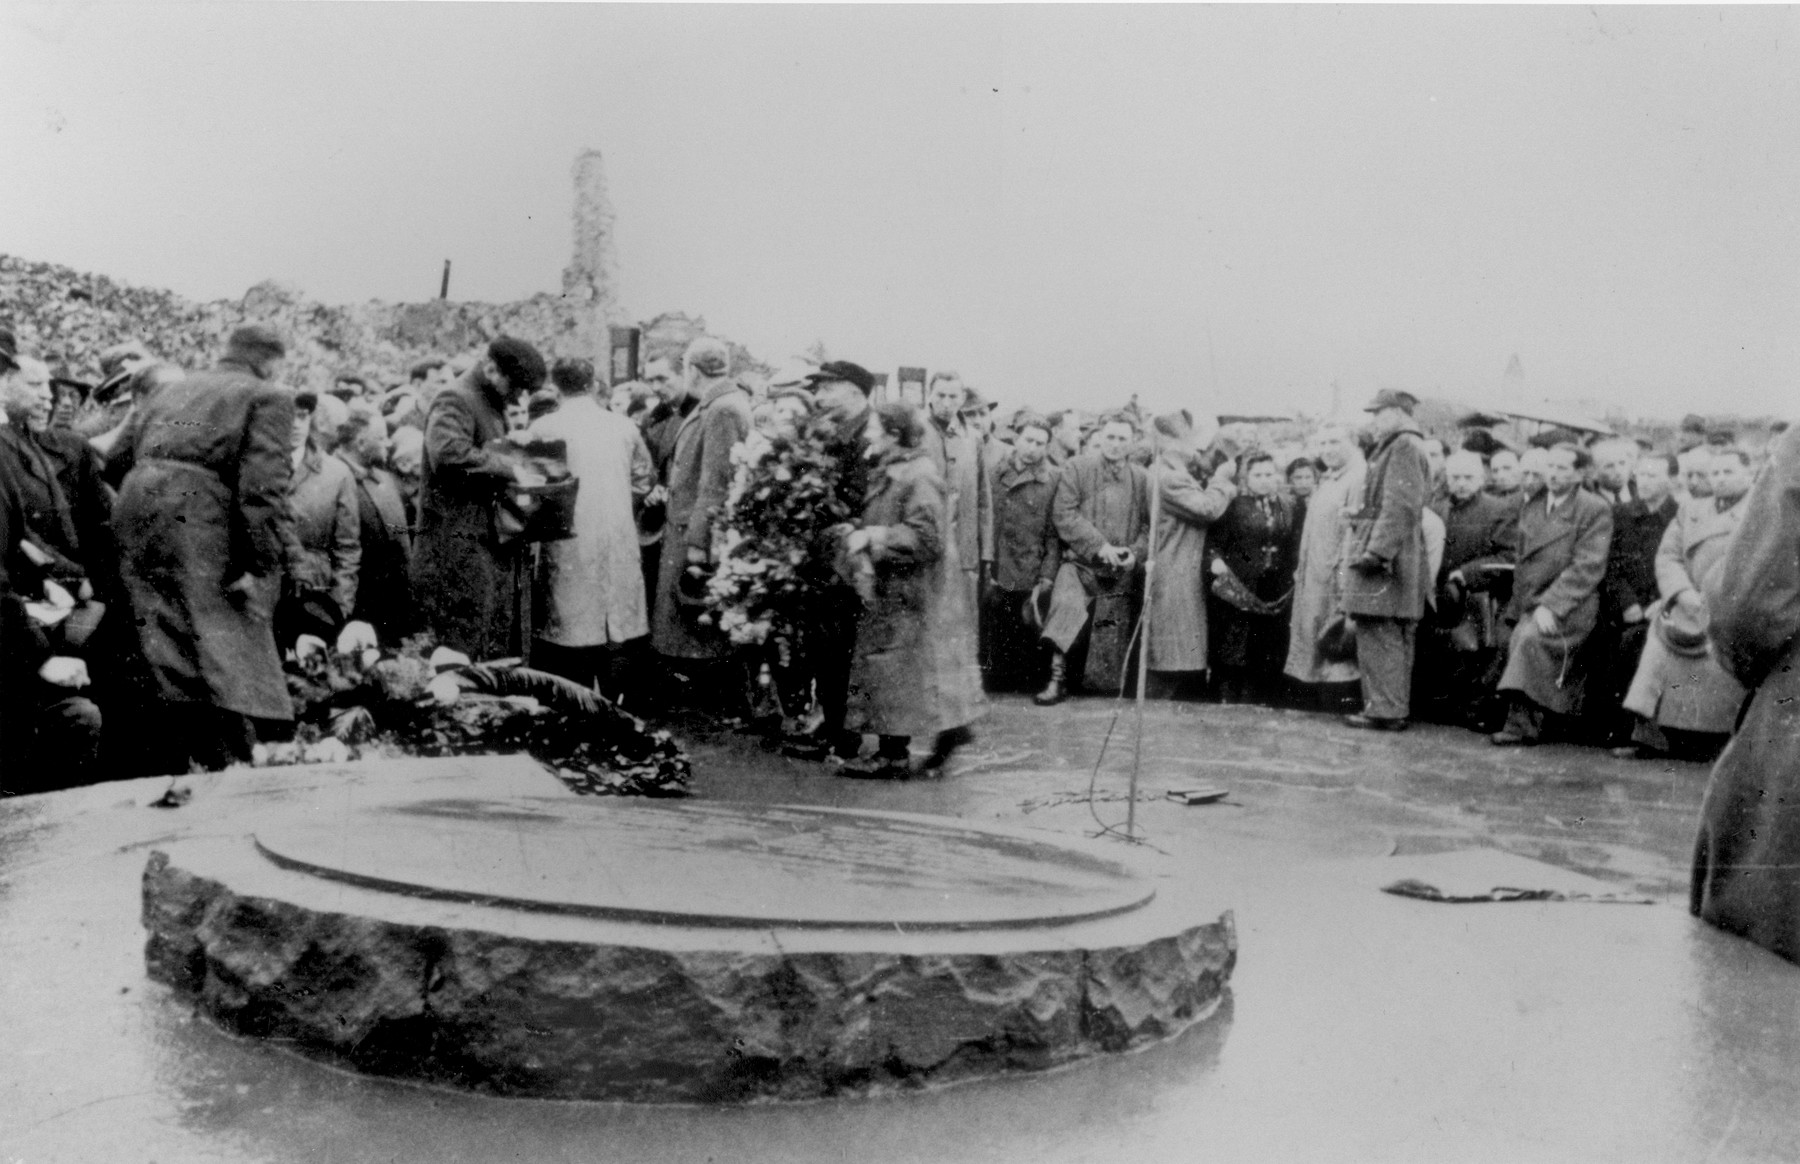 A wreath is laid at a memorial site in Warsaw for those killed during the Warsaw ghetto uprising [probably during a ceremony marking the fourth anniversary of the Warsaw ghetto uprising].